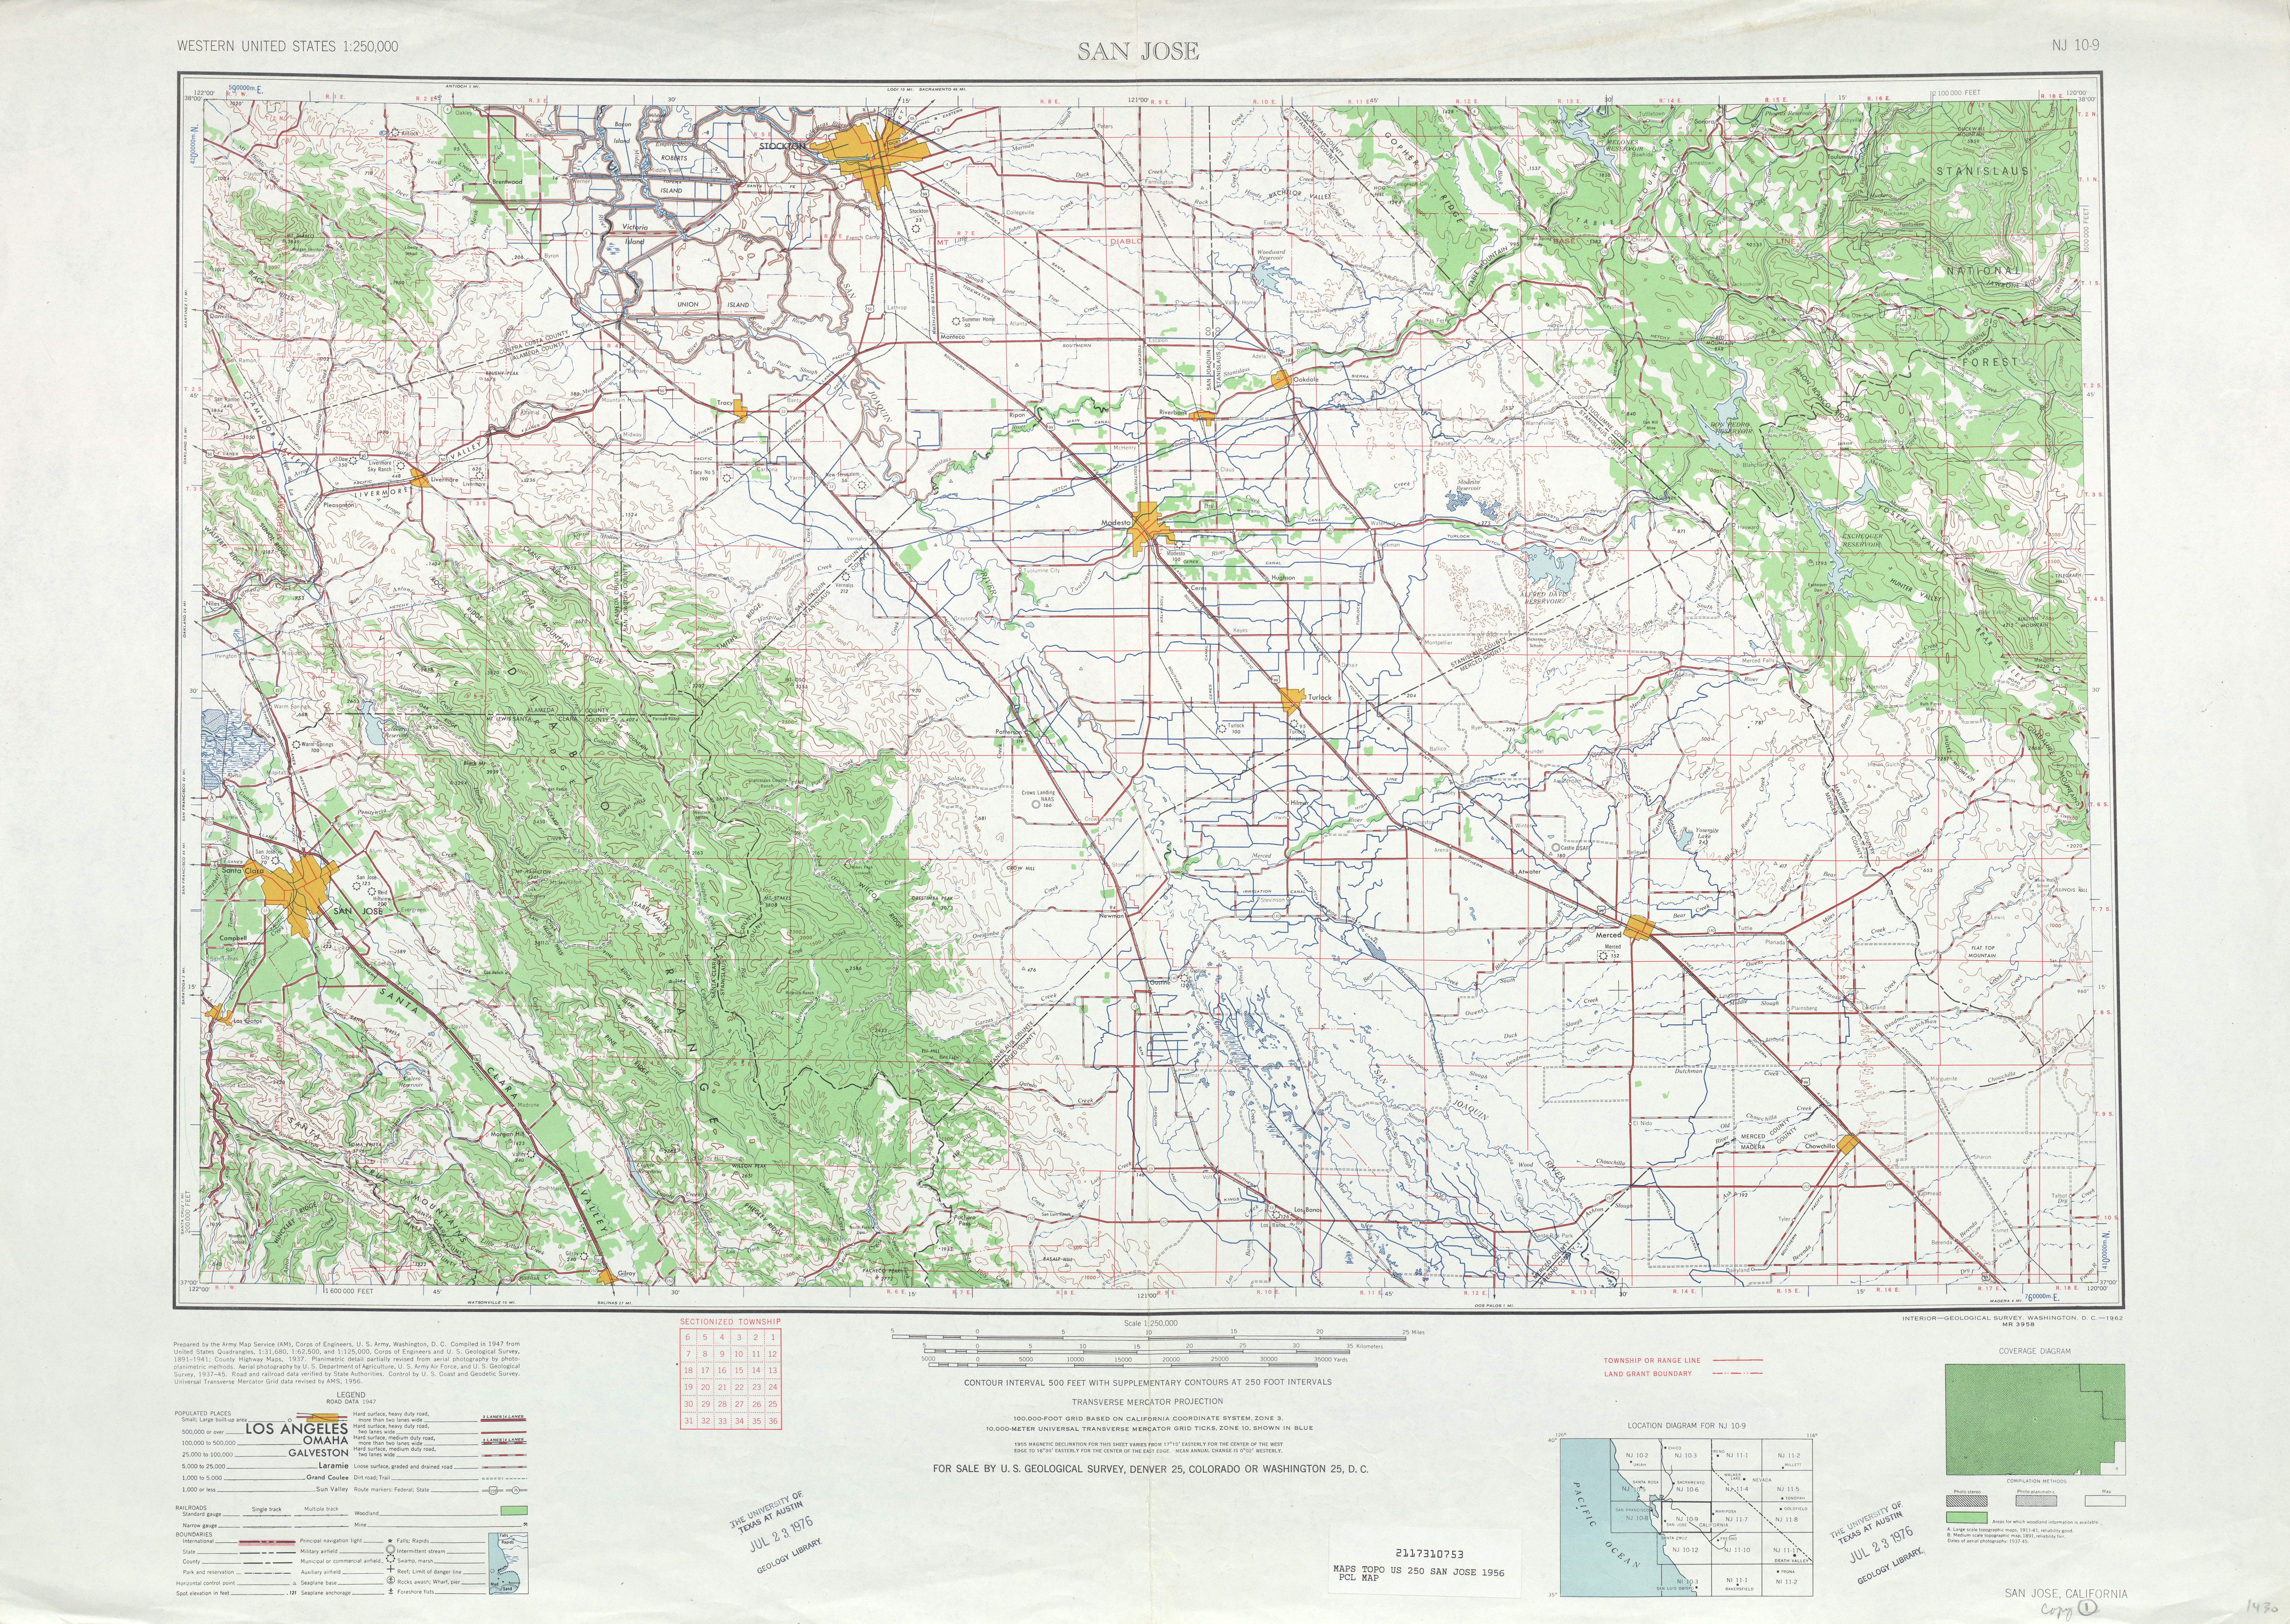 San Jose Topographic Map Images California Topographic Maps - Us map topography